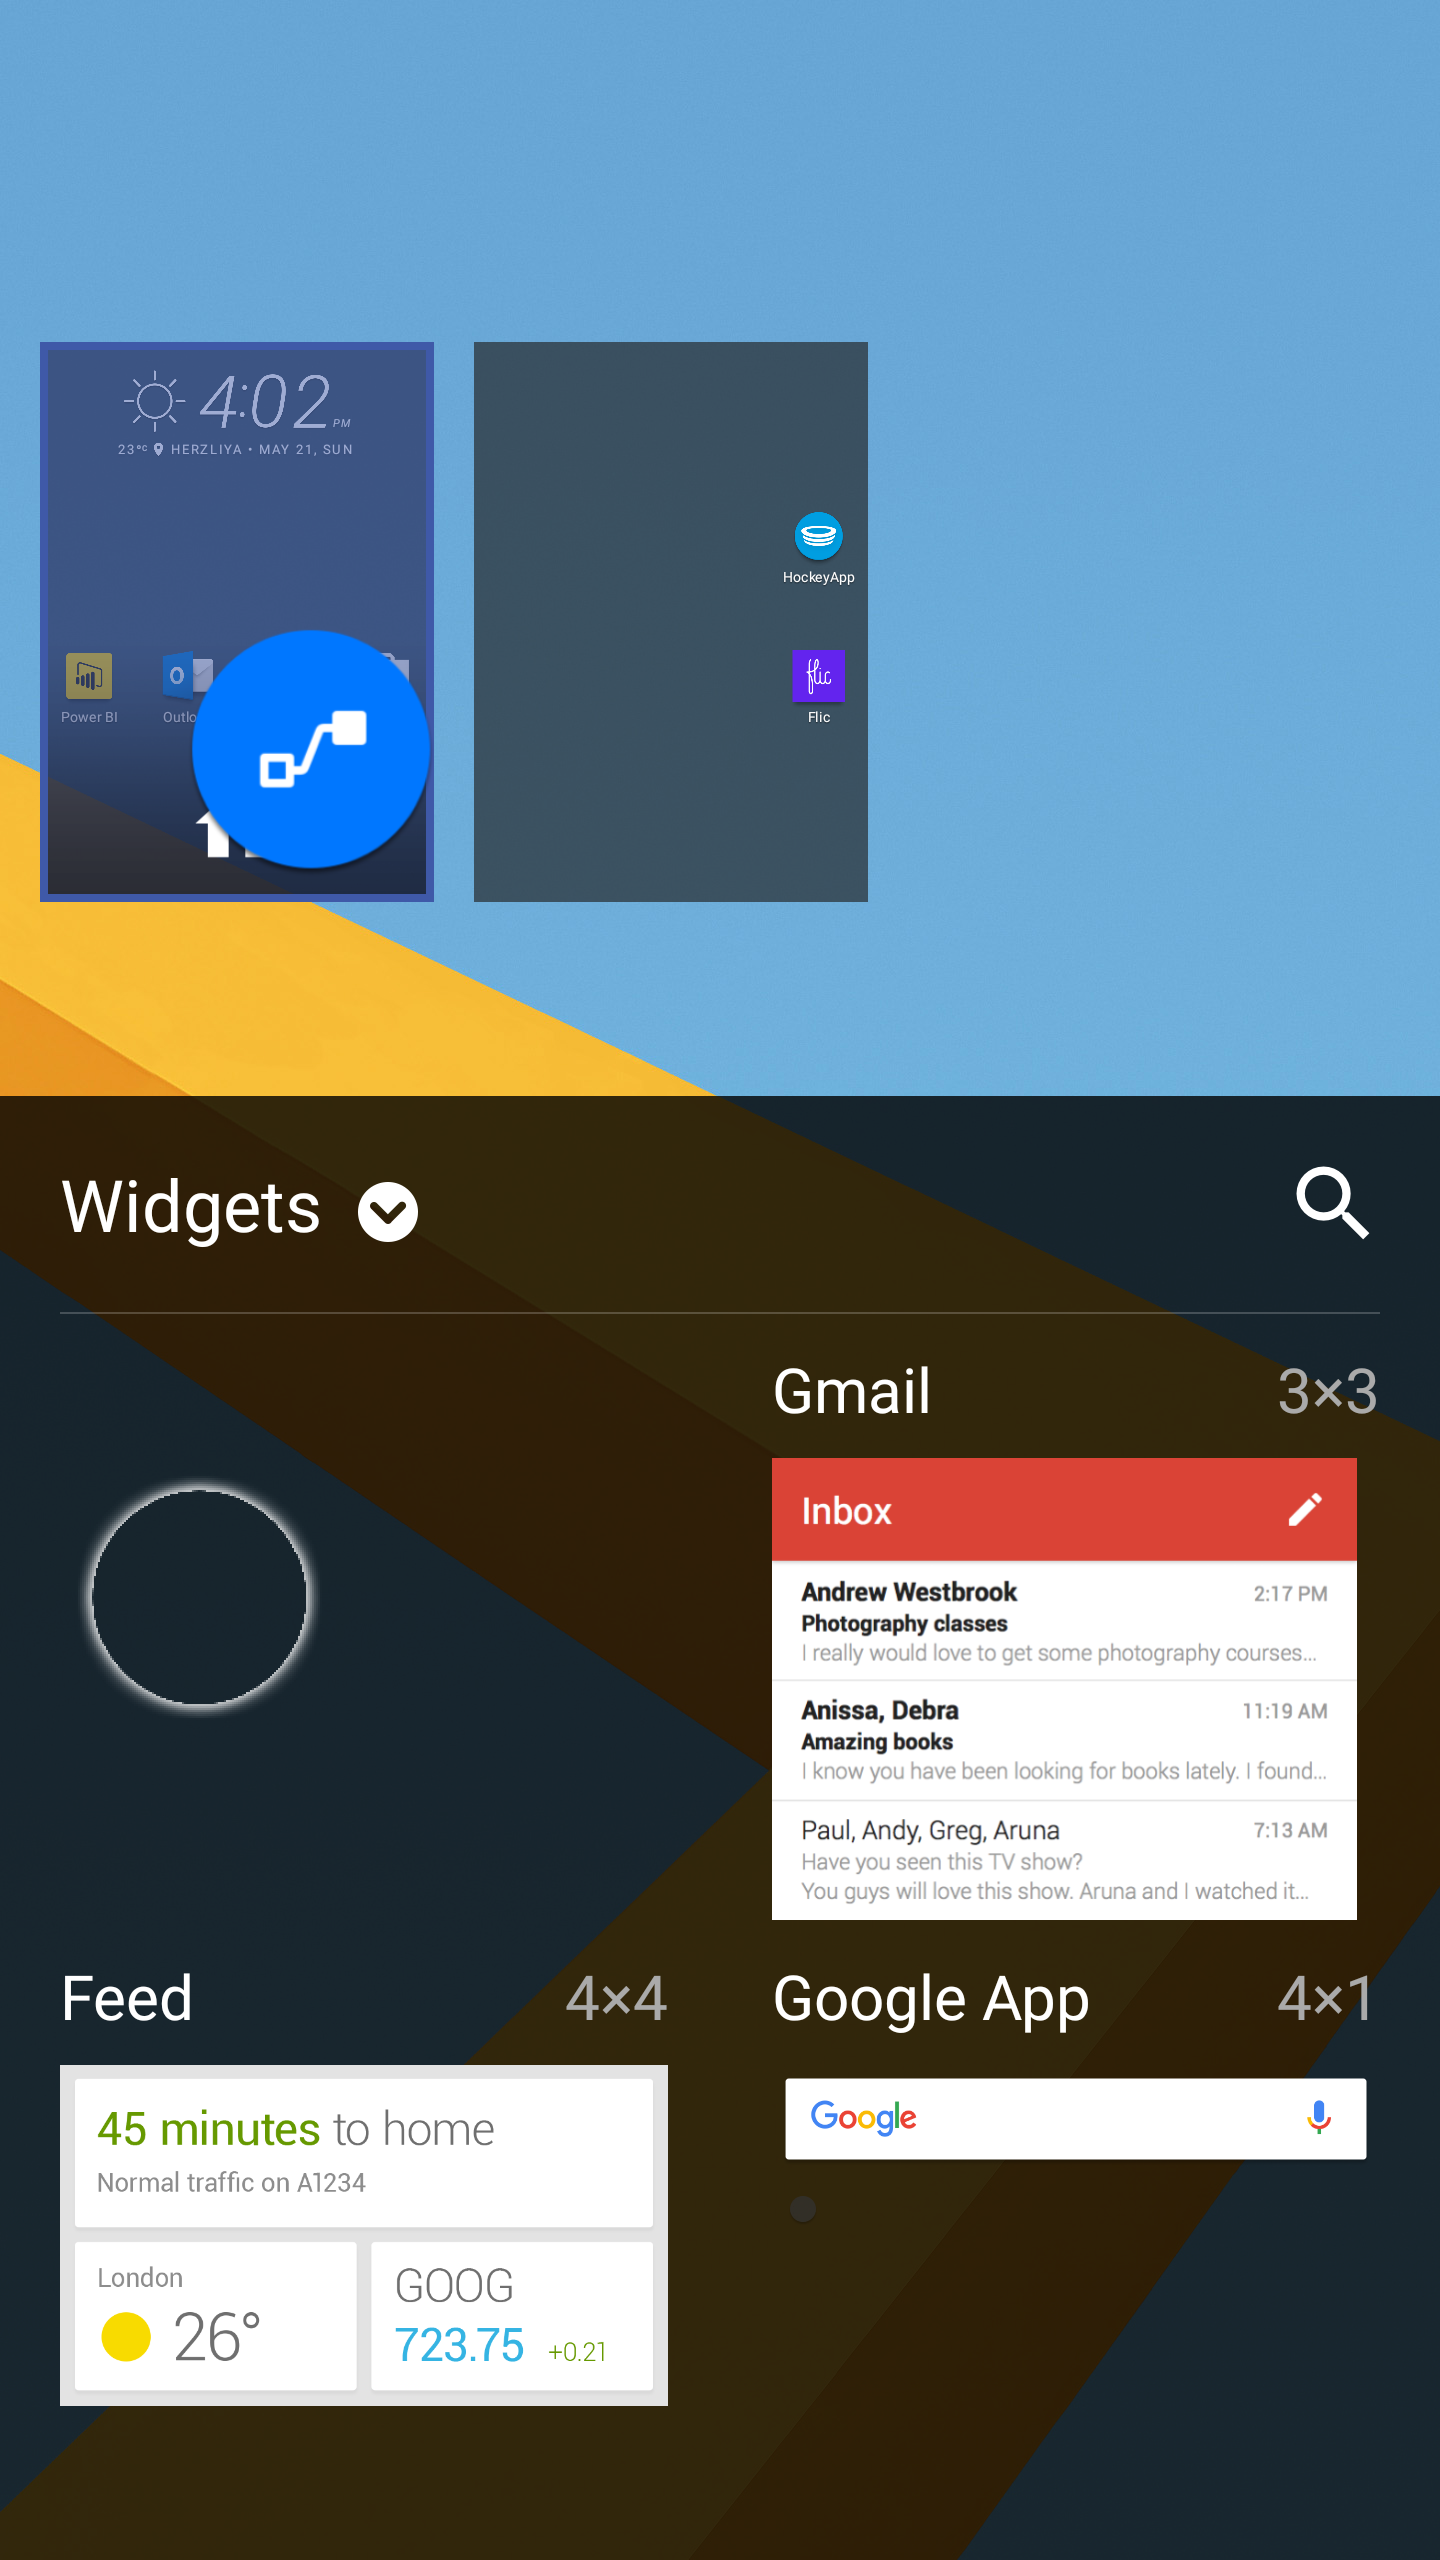 Widgets Are Now Officially Available For Both Android And